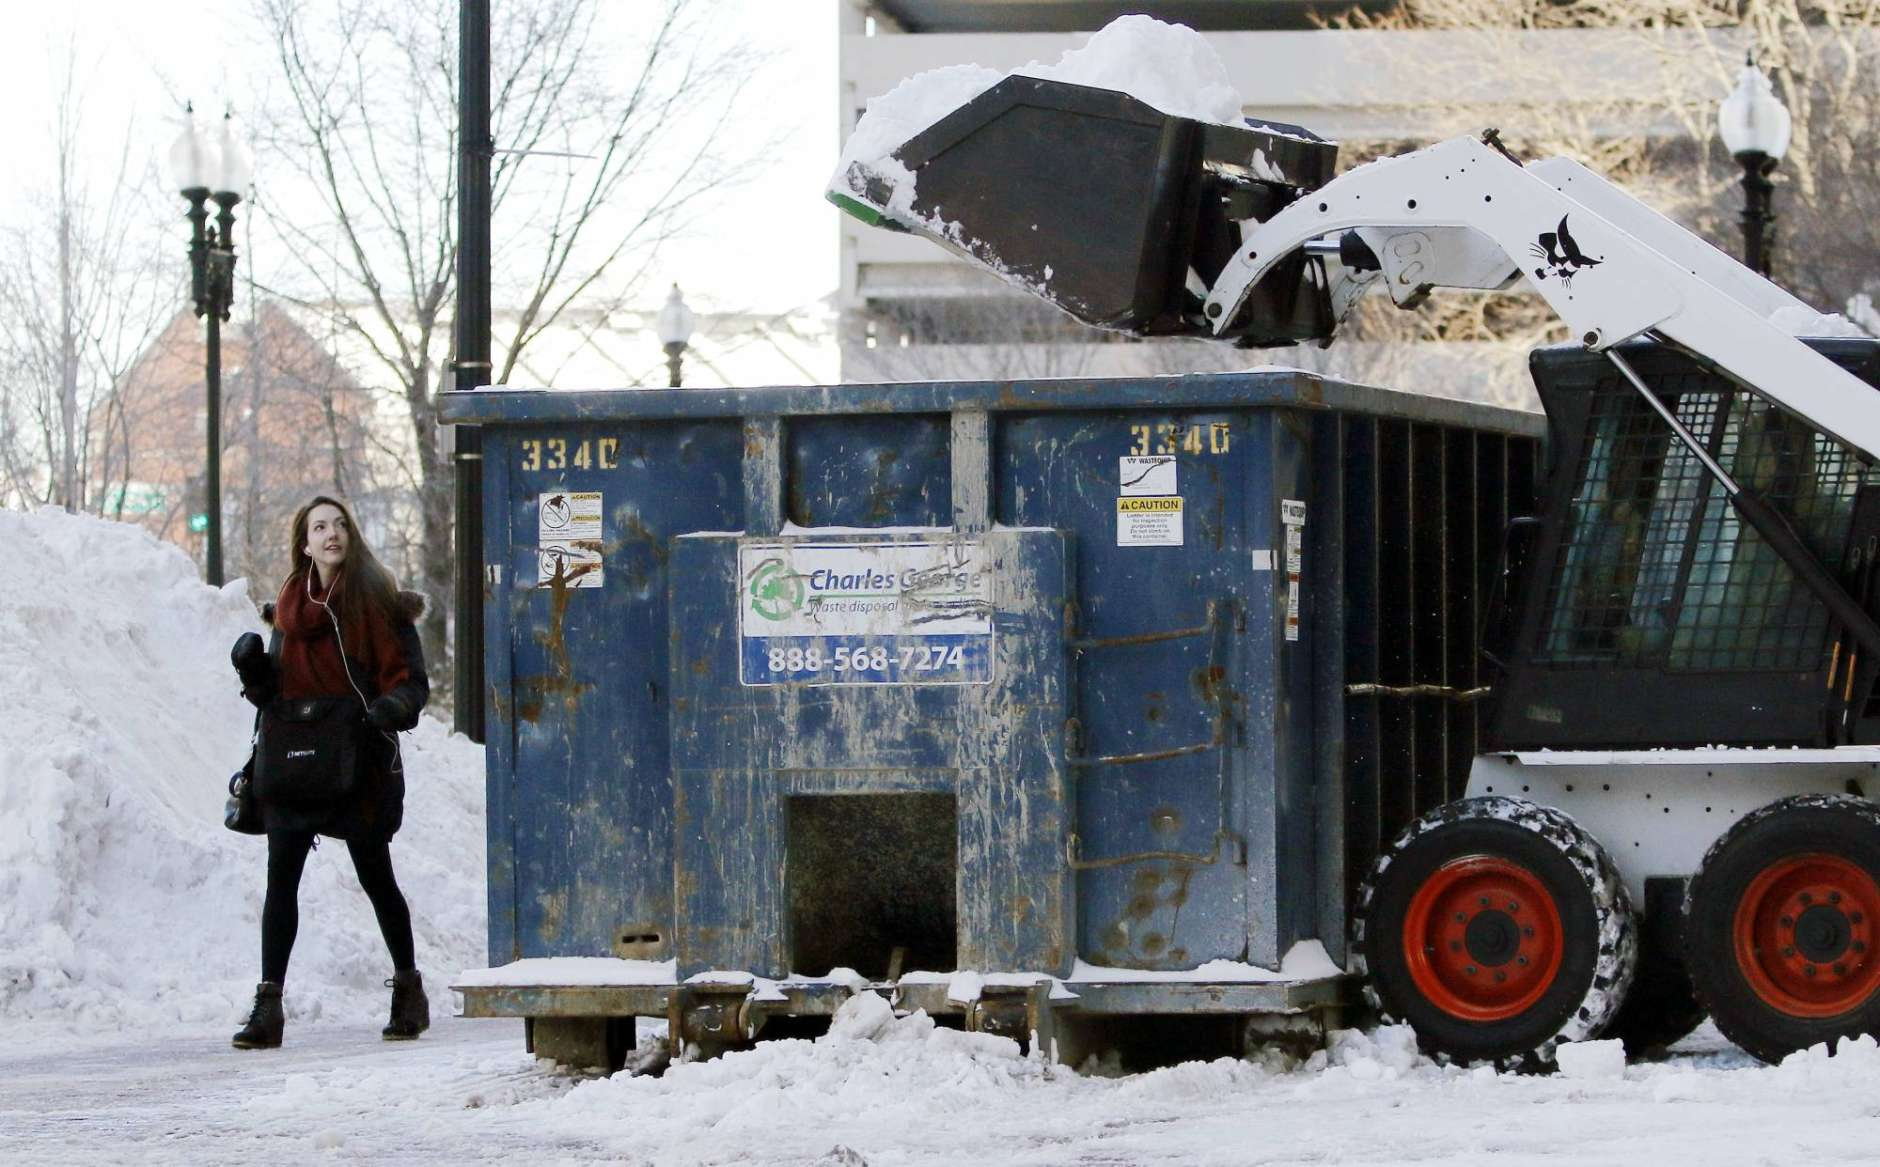 A pedestrian walks past a snow clearing operation, Friday, Feb. 10, 2017, in Boston after the previous day's snowstorm. (AP Photo/Bill Sikes)